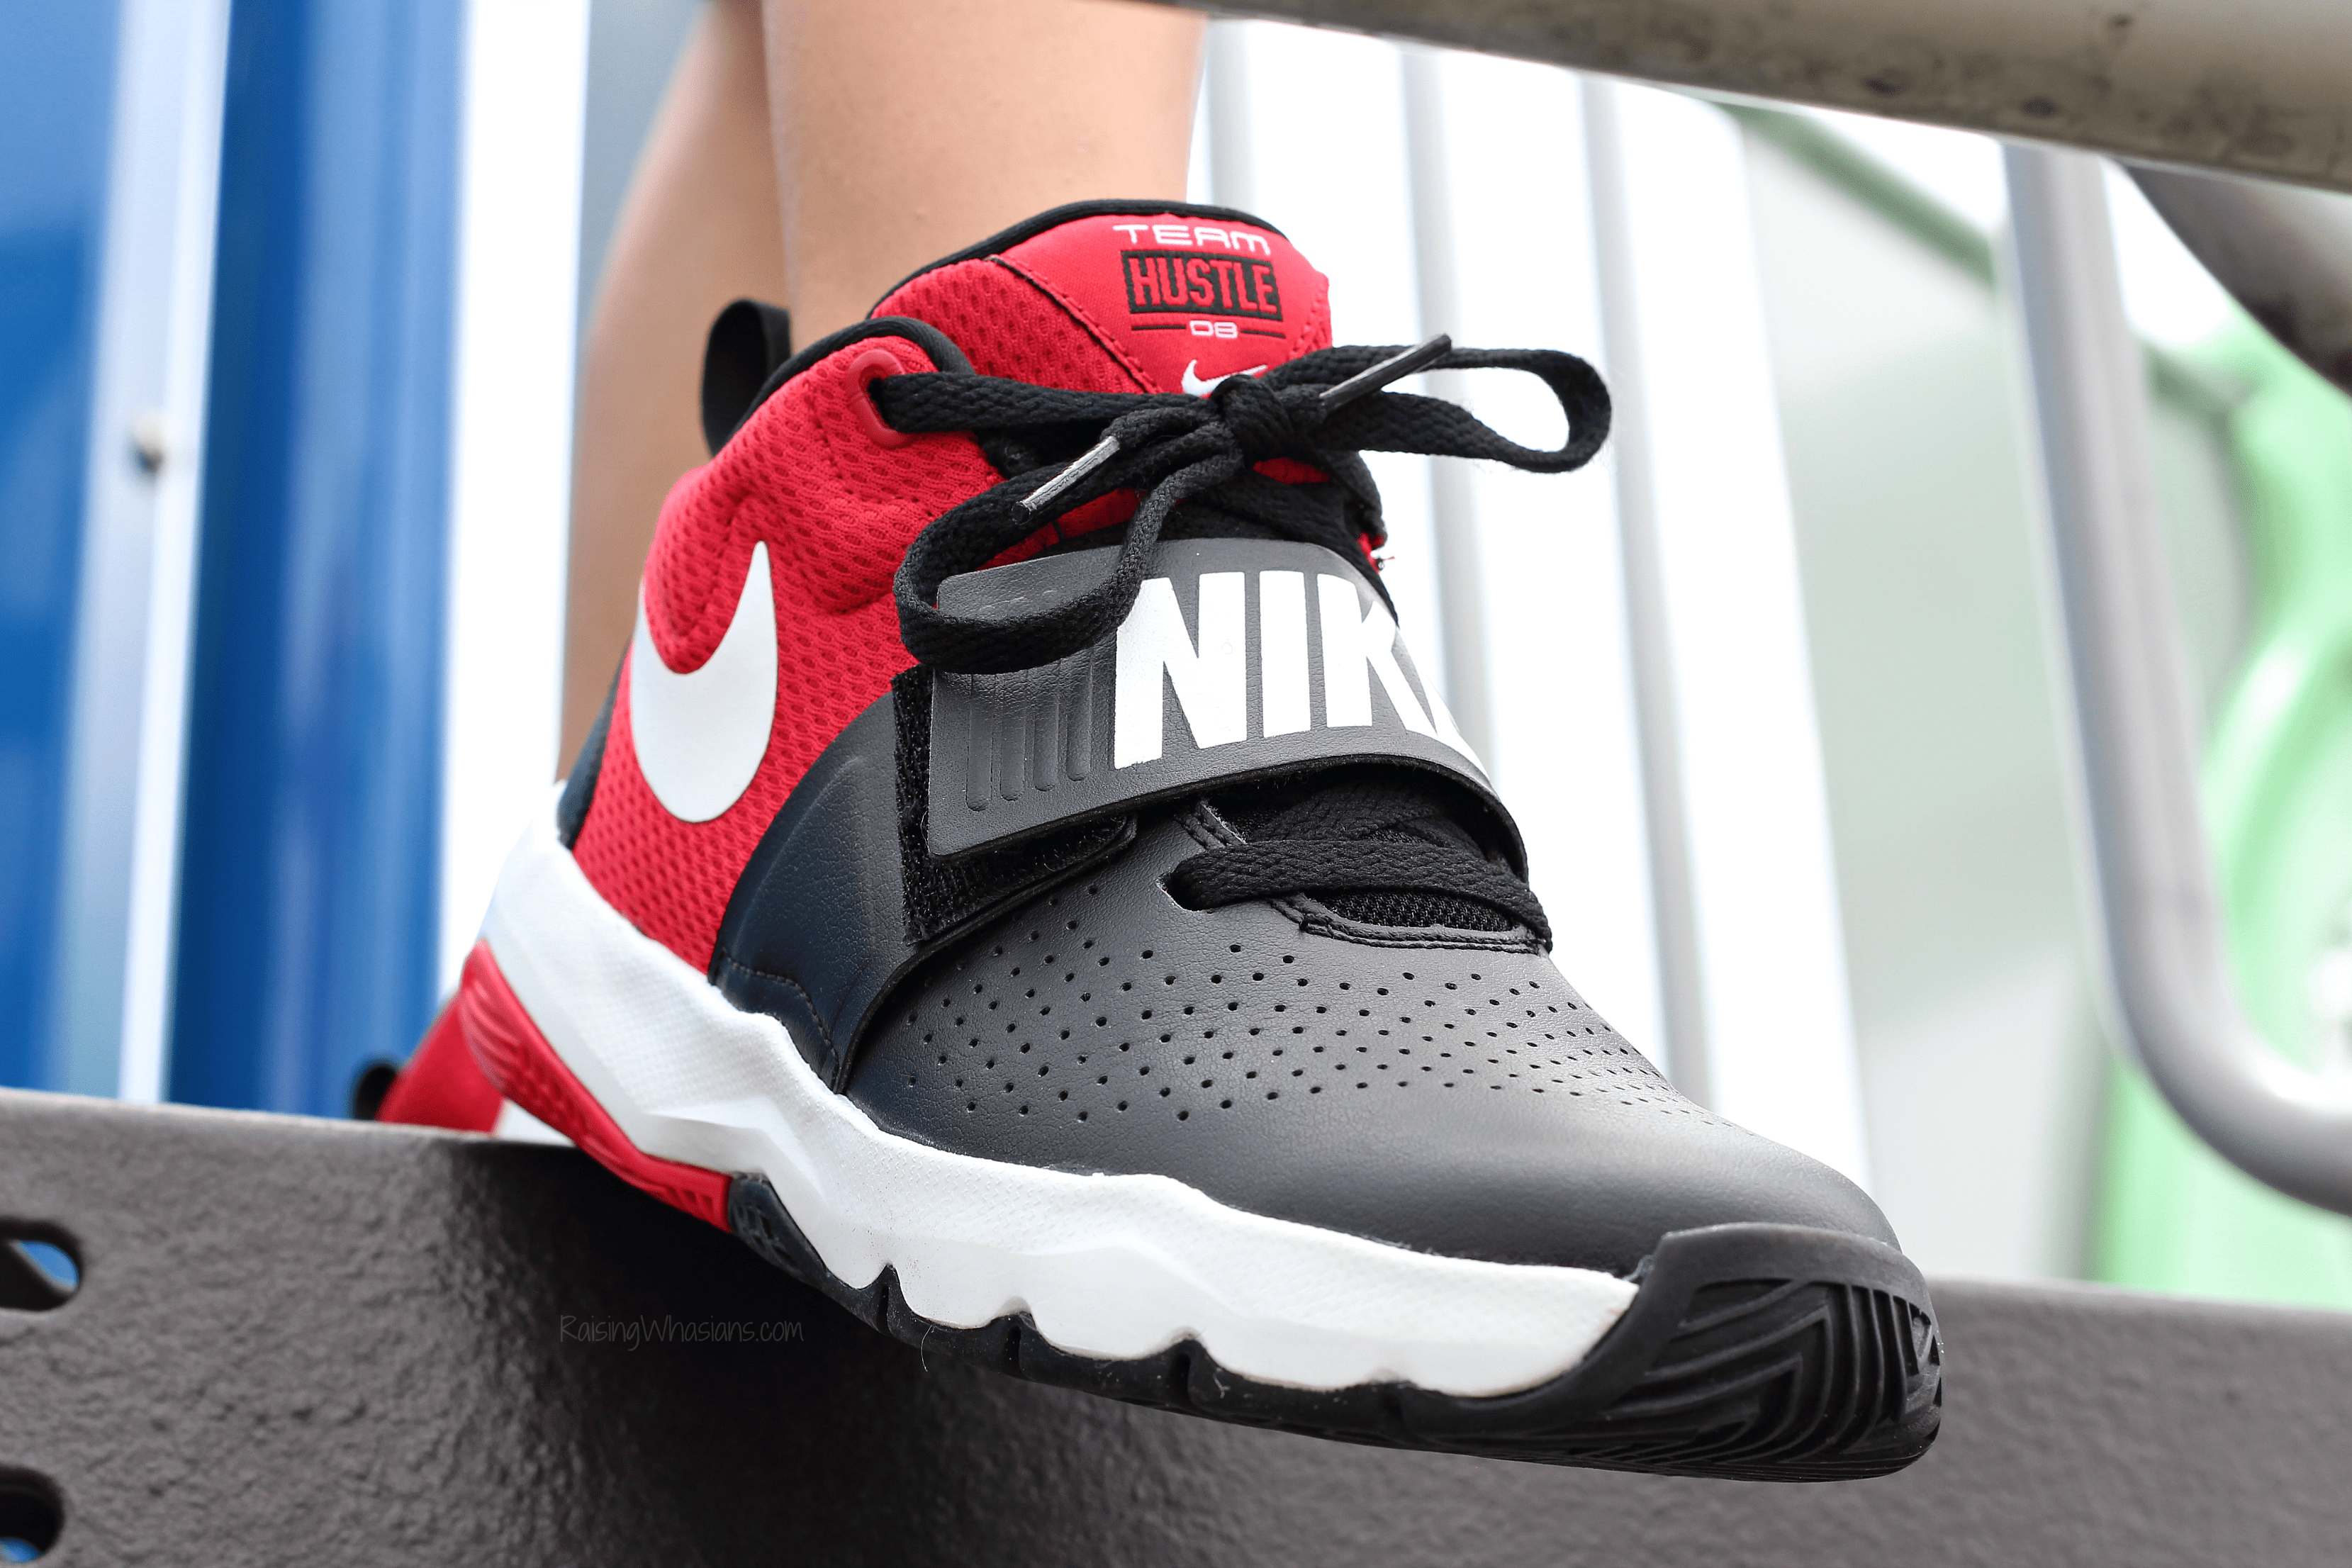 Nike shoes deal for boys Kohl's